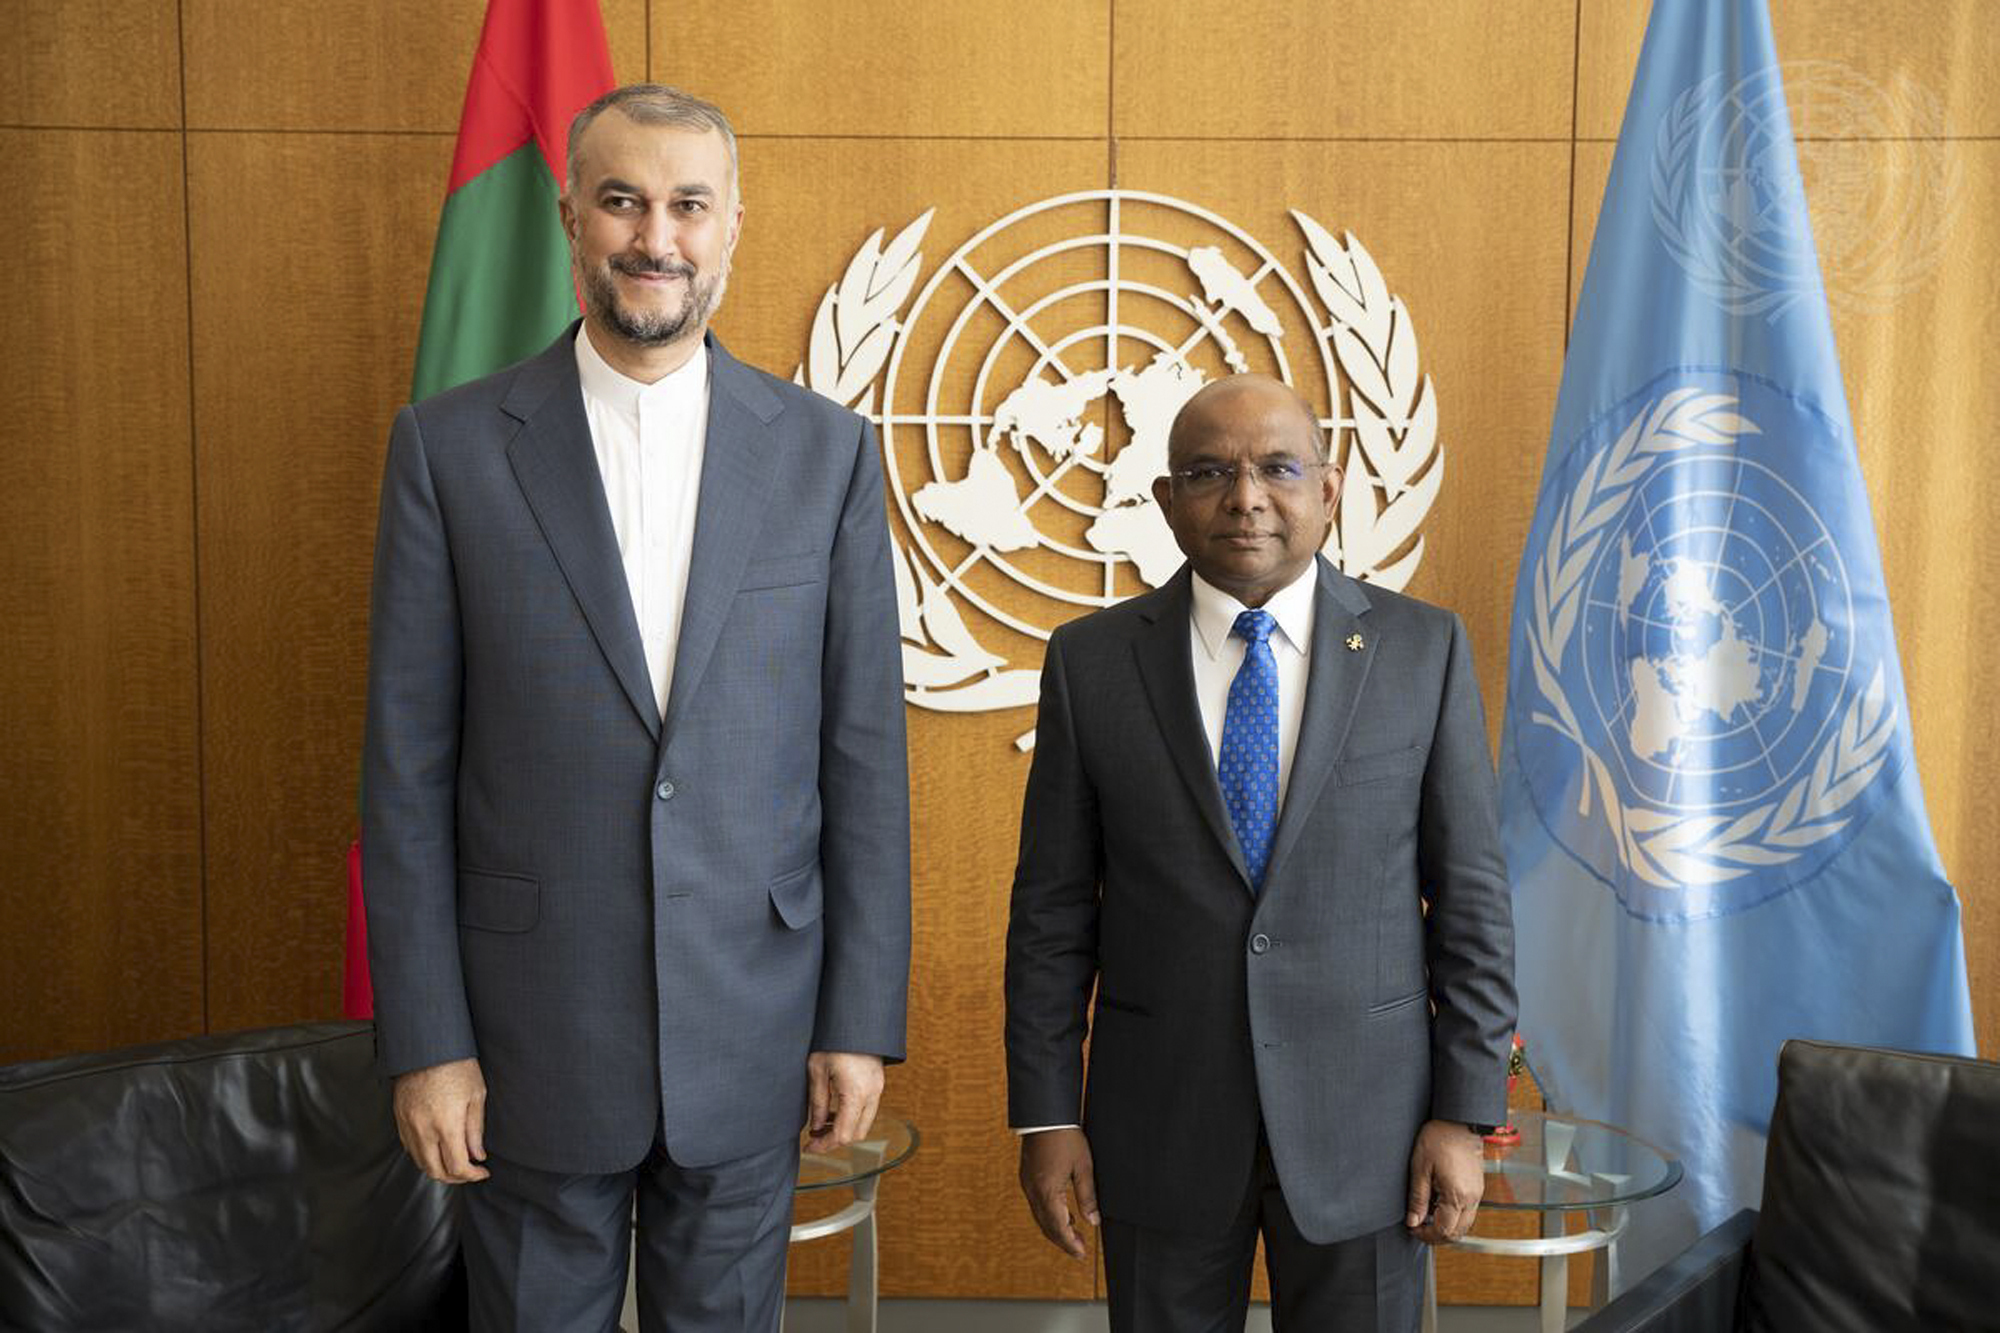 President of General Assembly Meets Foreign Minister of Australia